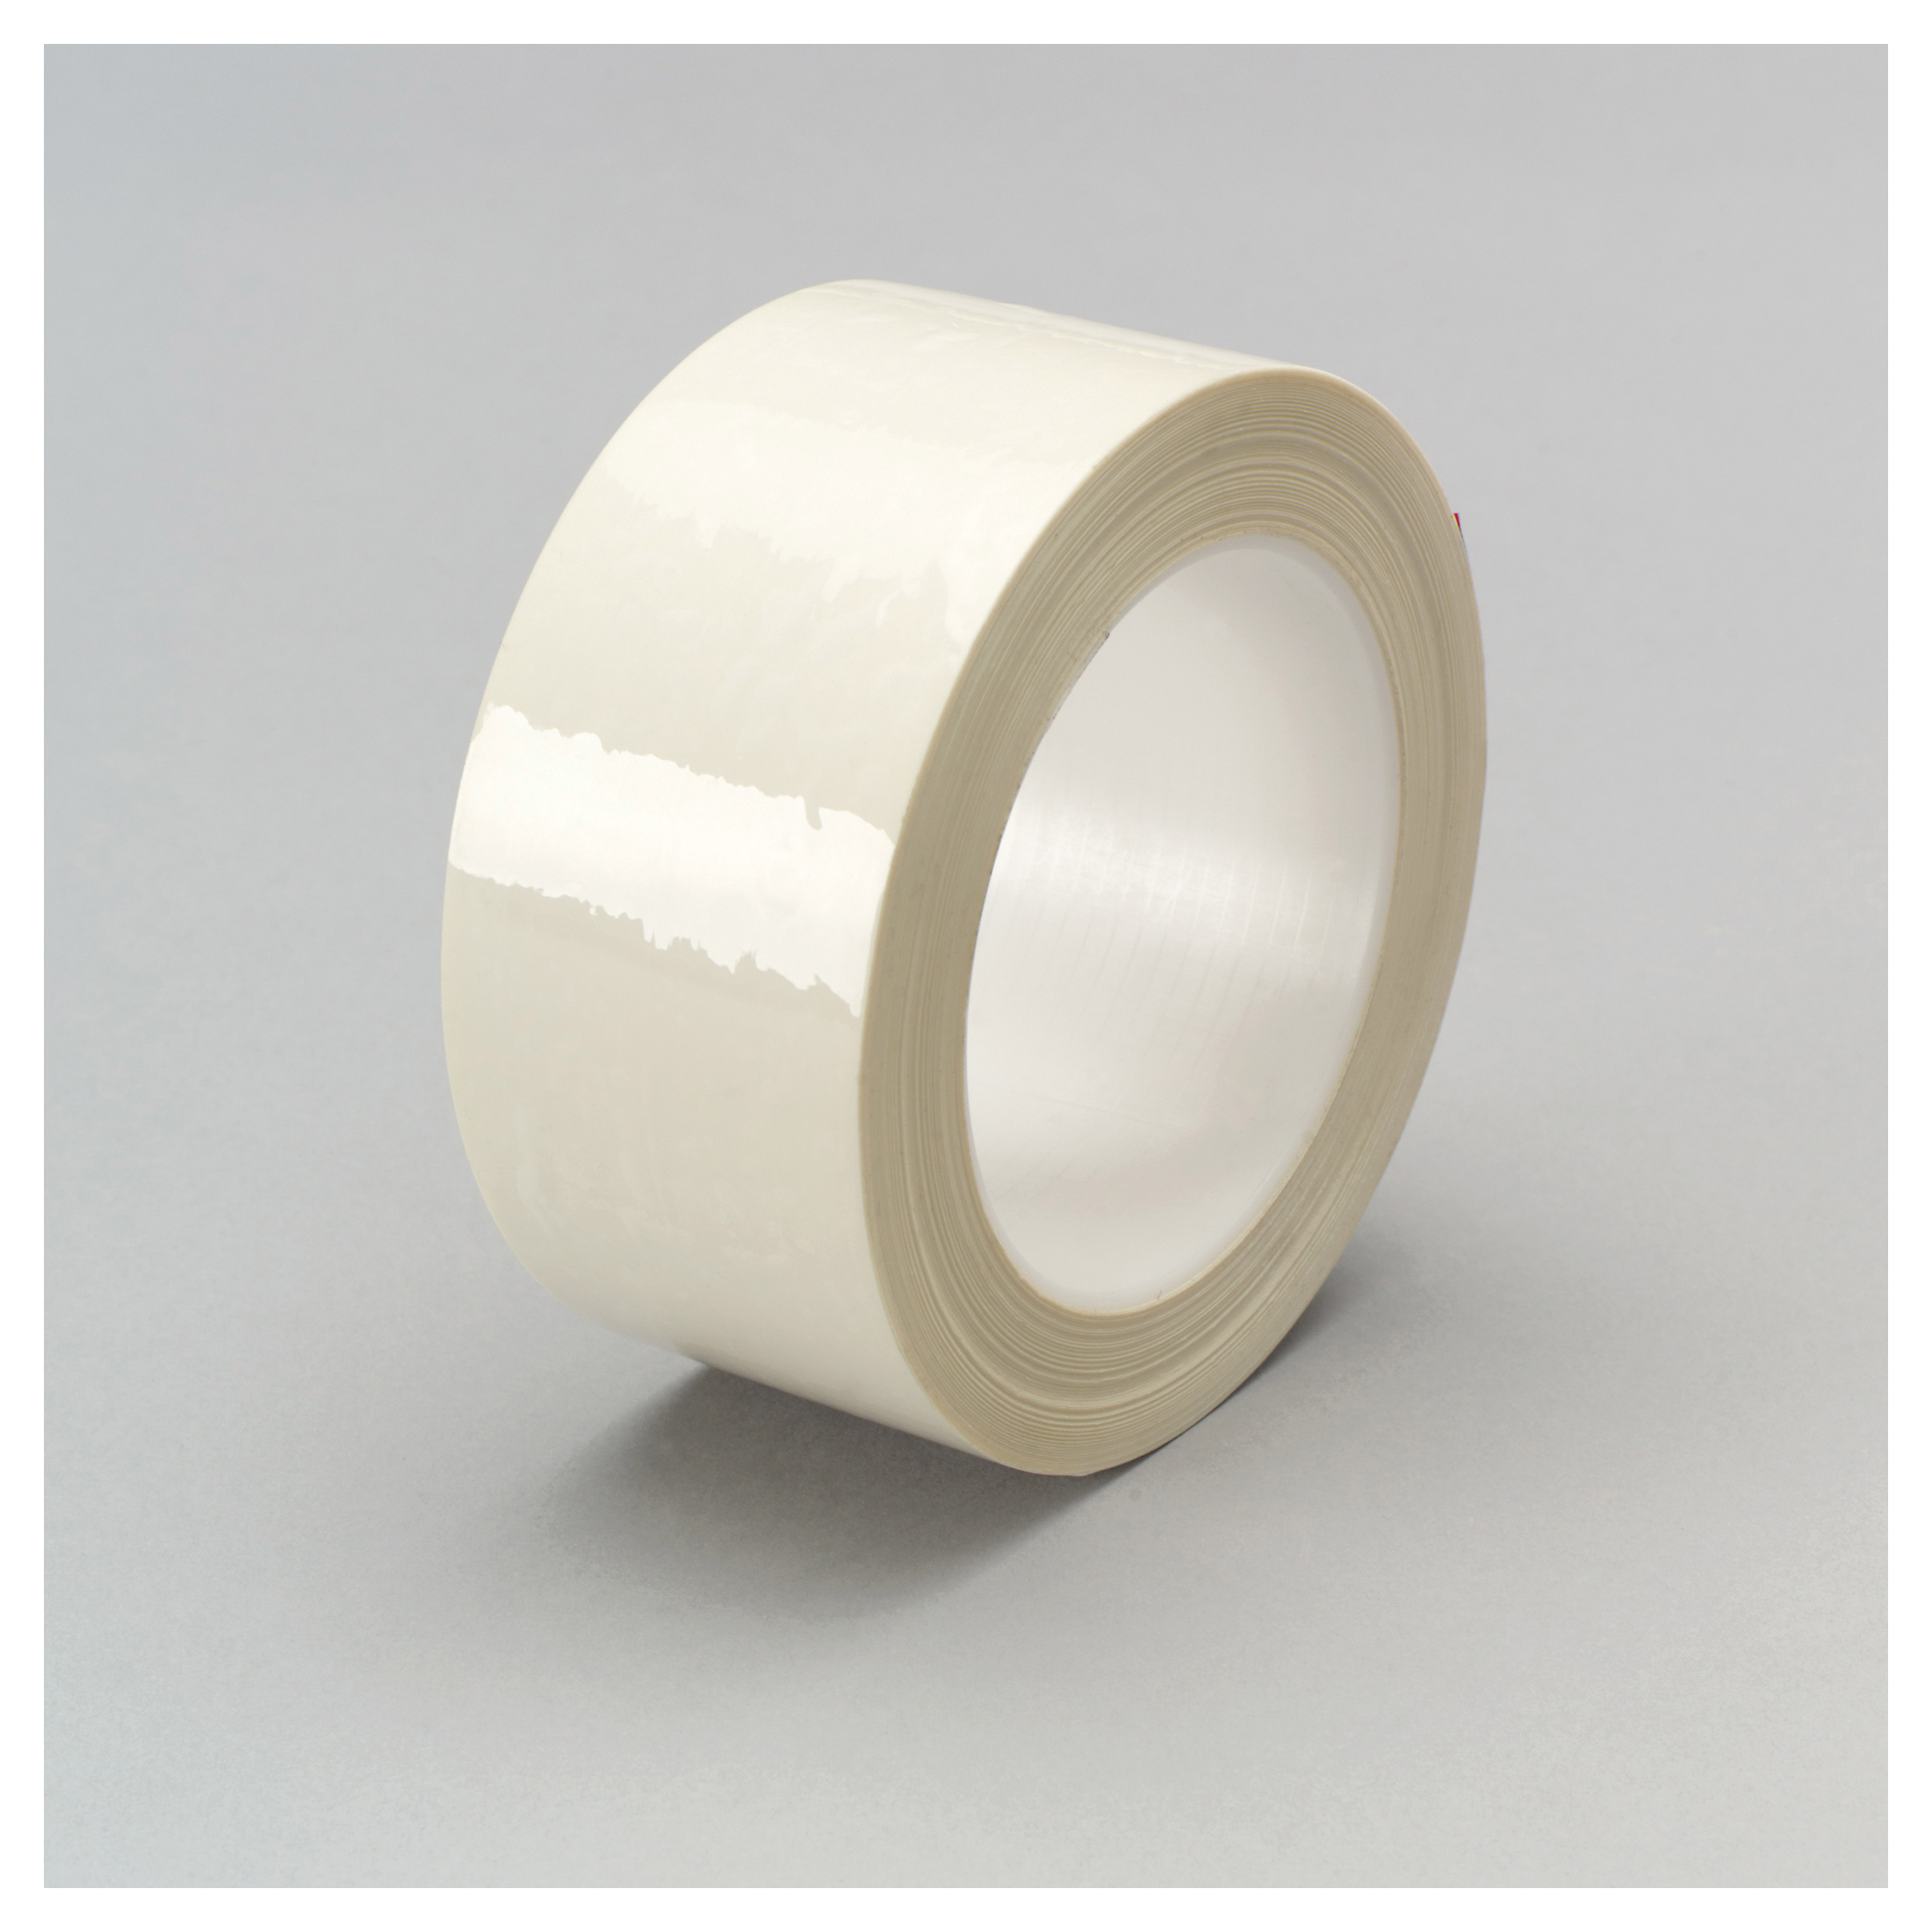 3M™ 021200-04354 High Temperature Film Tape, 72 yd L x 2 in W, 3.2 mil THK, Rubber Adhesive, Nylon Fiber Backing, White